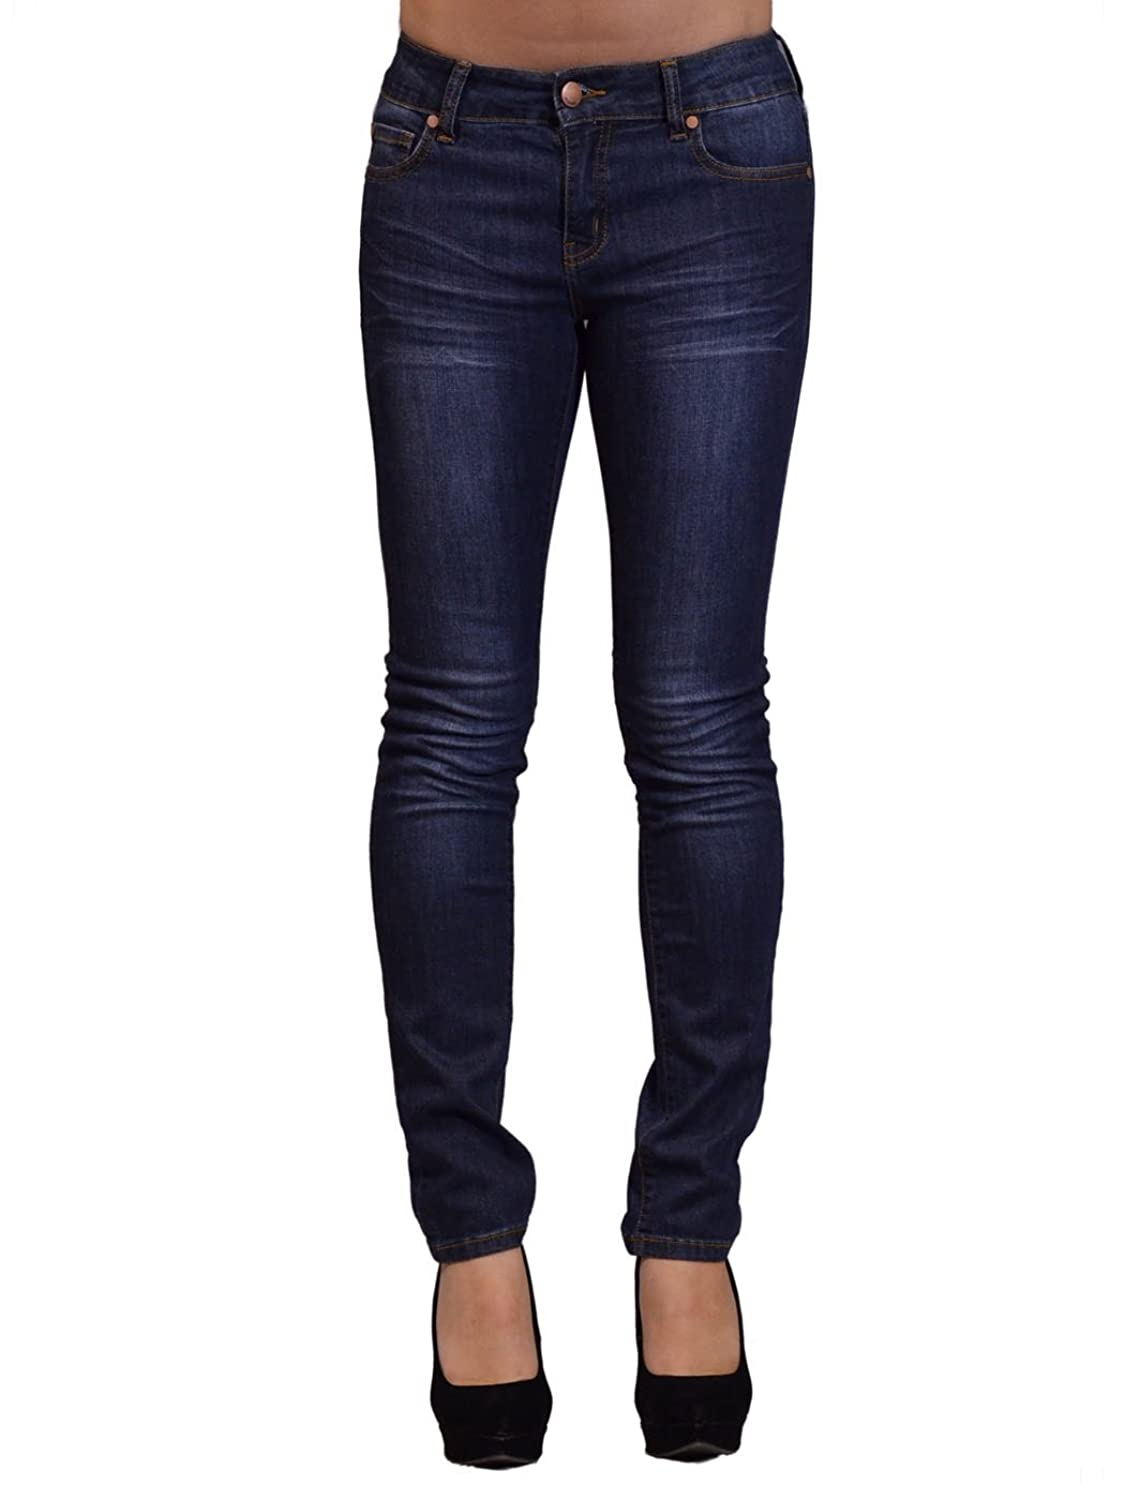 MonoB Casual Dark Washed High Waist Skinny Denim Jean Pants